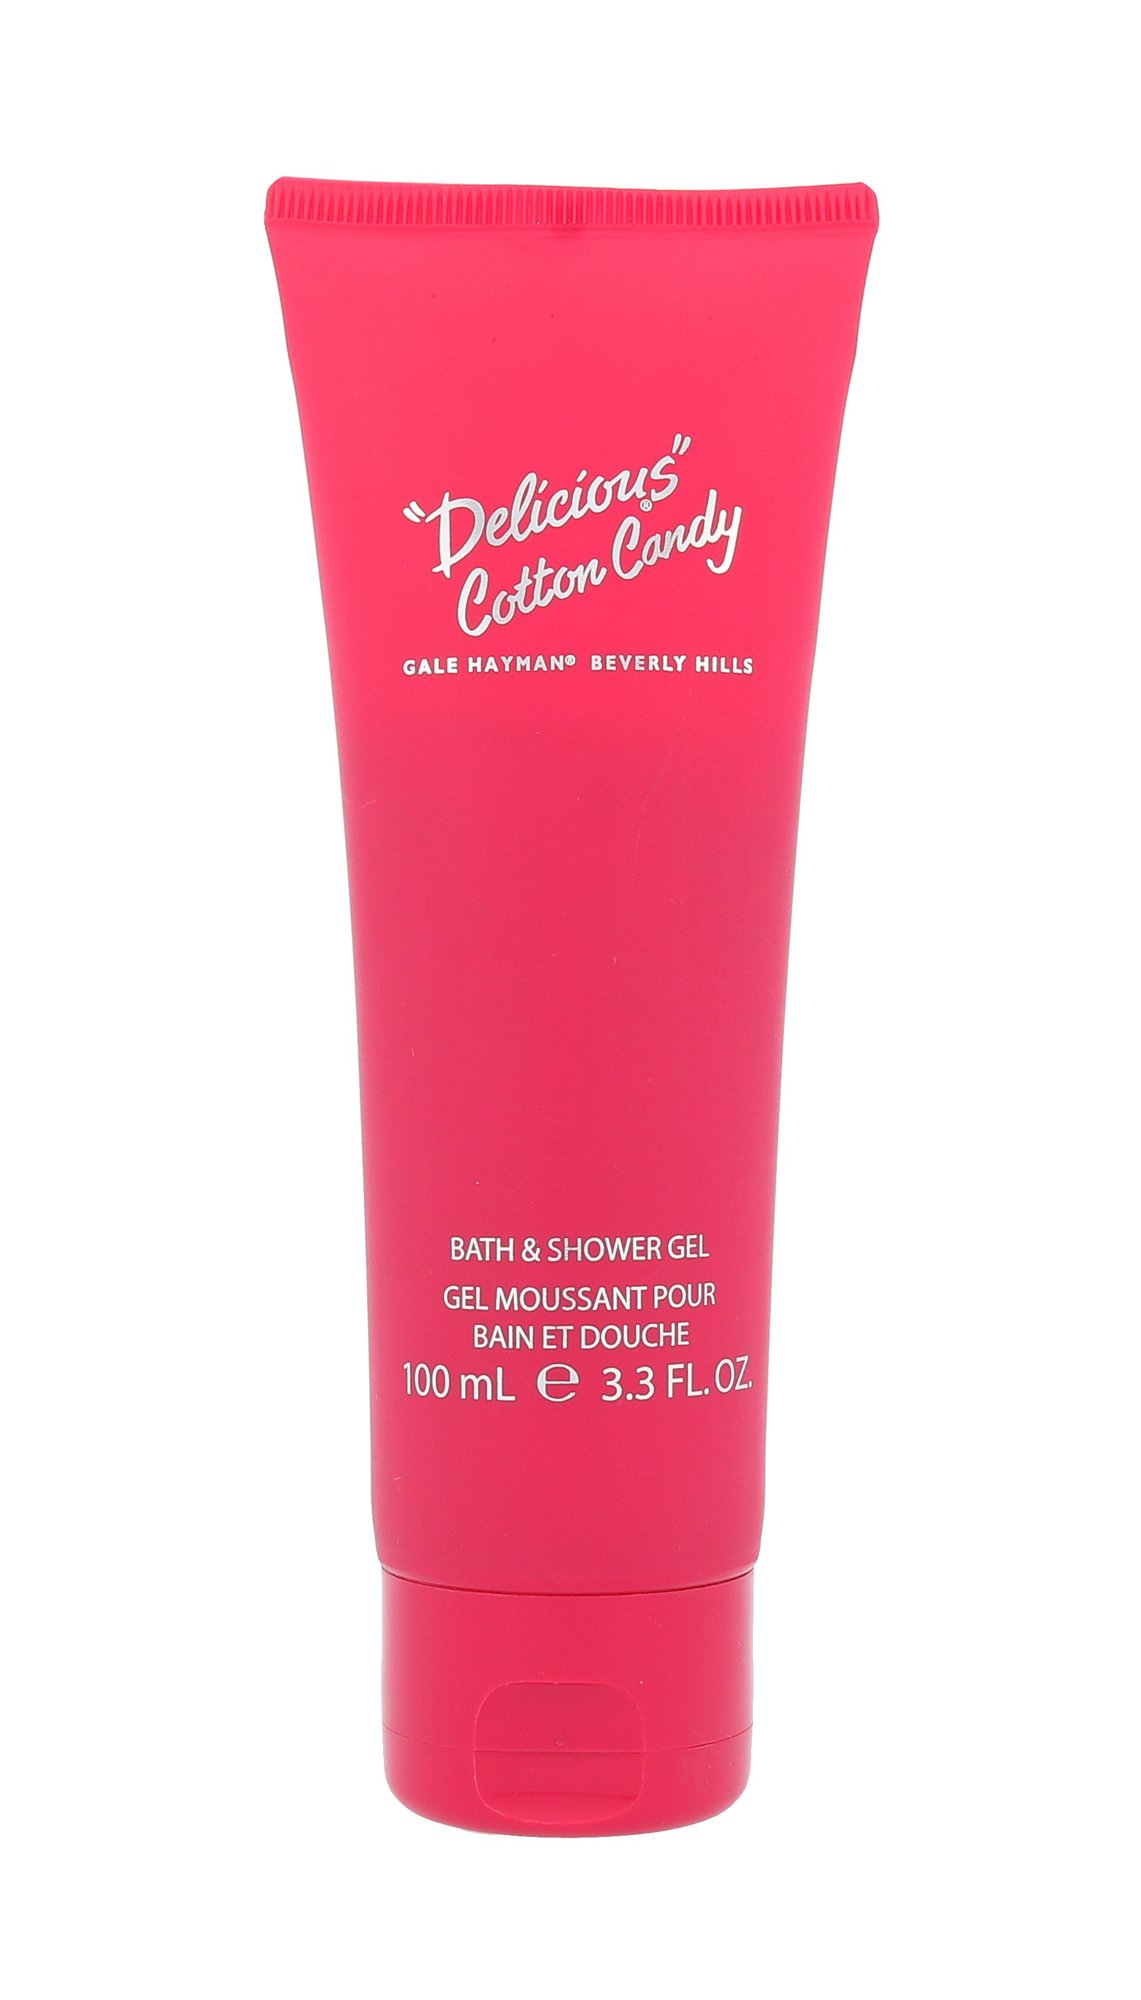 Gale Hayman Delicious Cotton Candy Shower gel 100ml